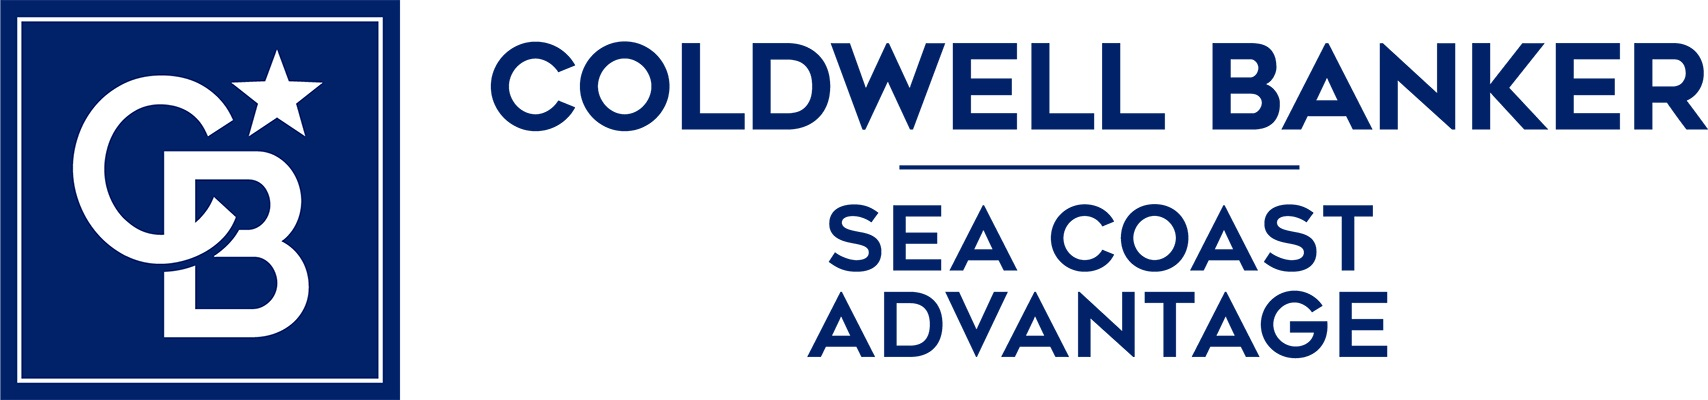 Chloe Kulakowski - Coldwell Banker Sea Coast Advantage Realty